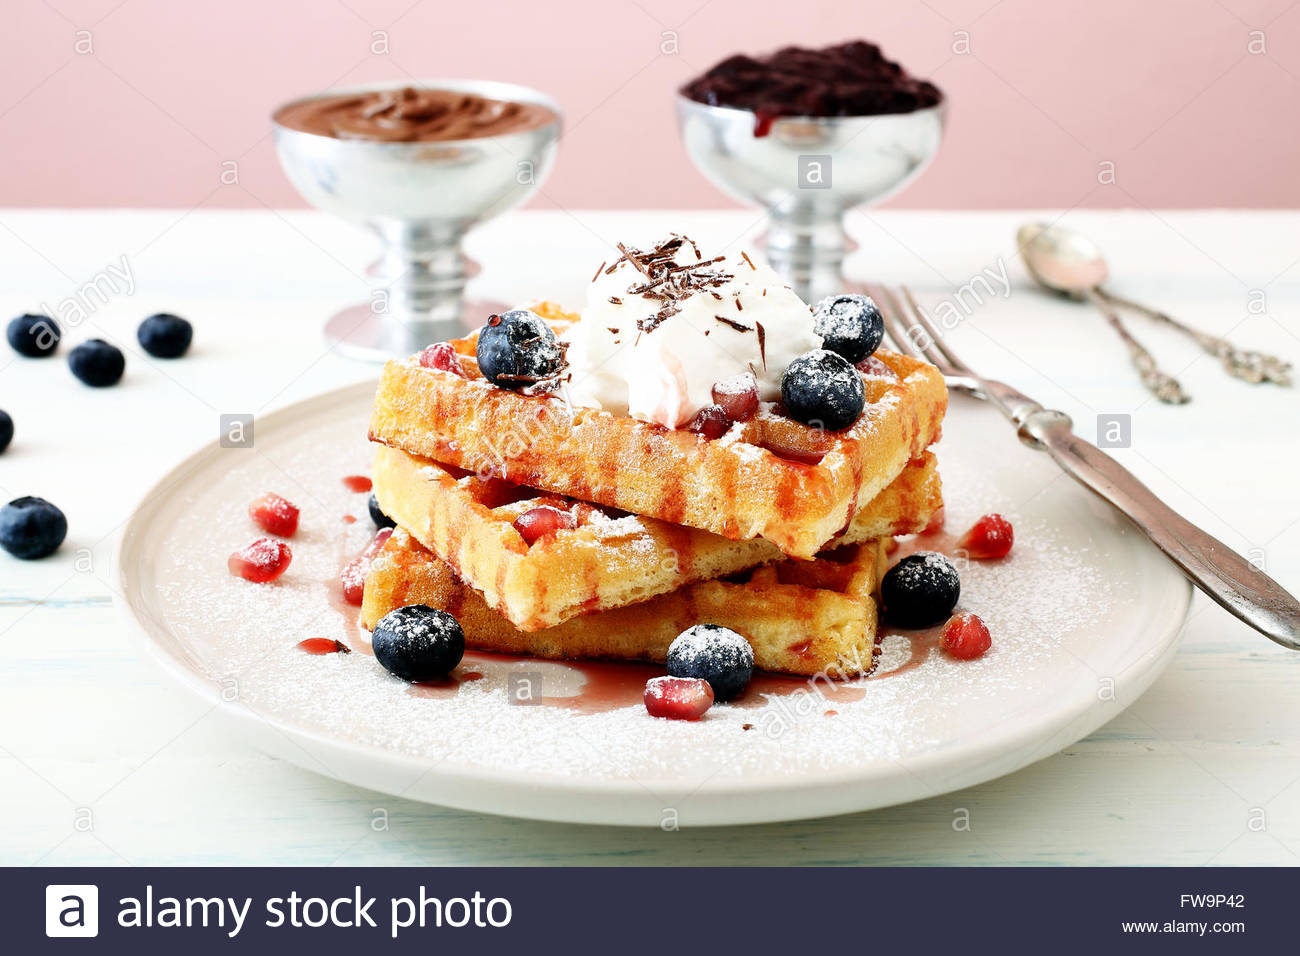 Belgian waffles with fresh berries on kitchen table background - Stock Image